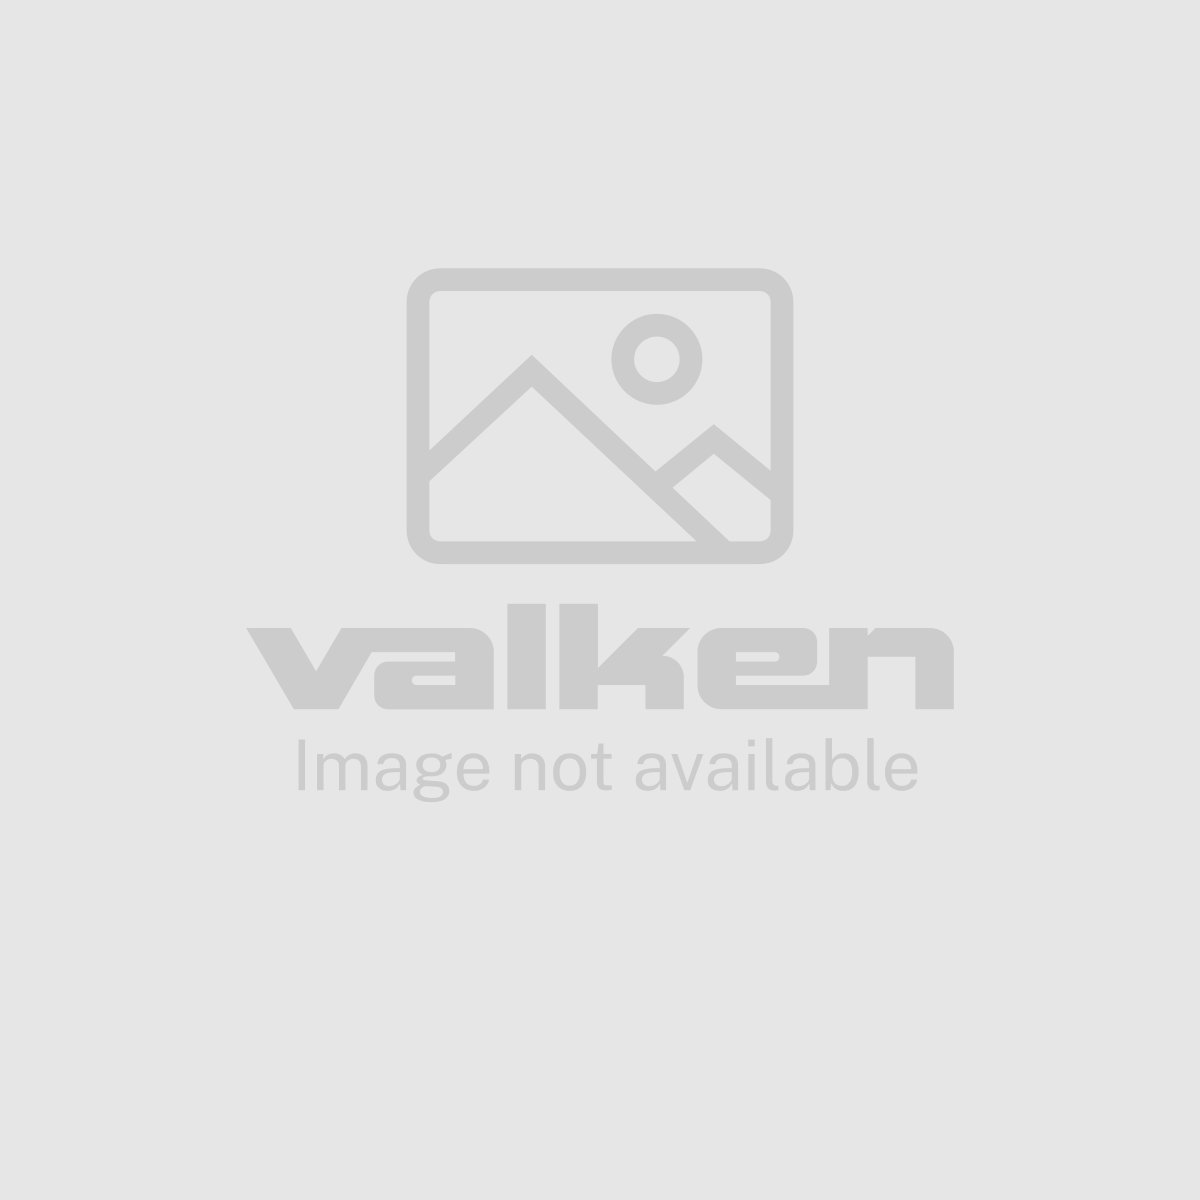 View larger image of Valken Fate GFX 4+3 Paintball Harness - Liquid Silver